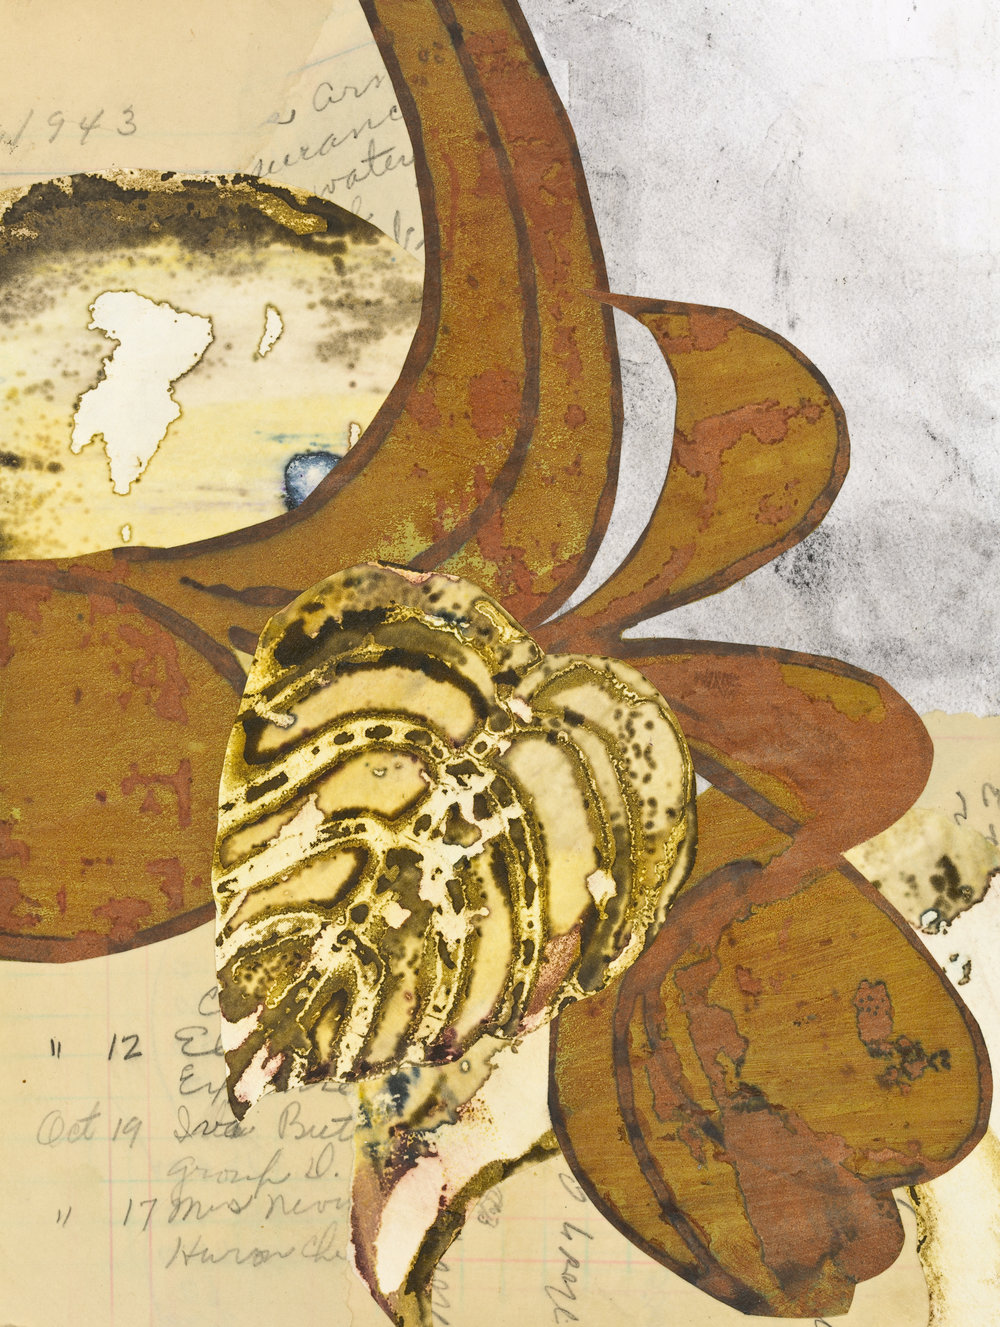 <p><strong>ANN MILLER</strong>printmaking, collage<a href=/ann-miller>More →</a></p>